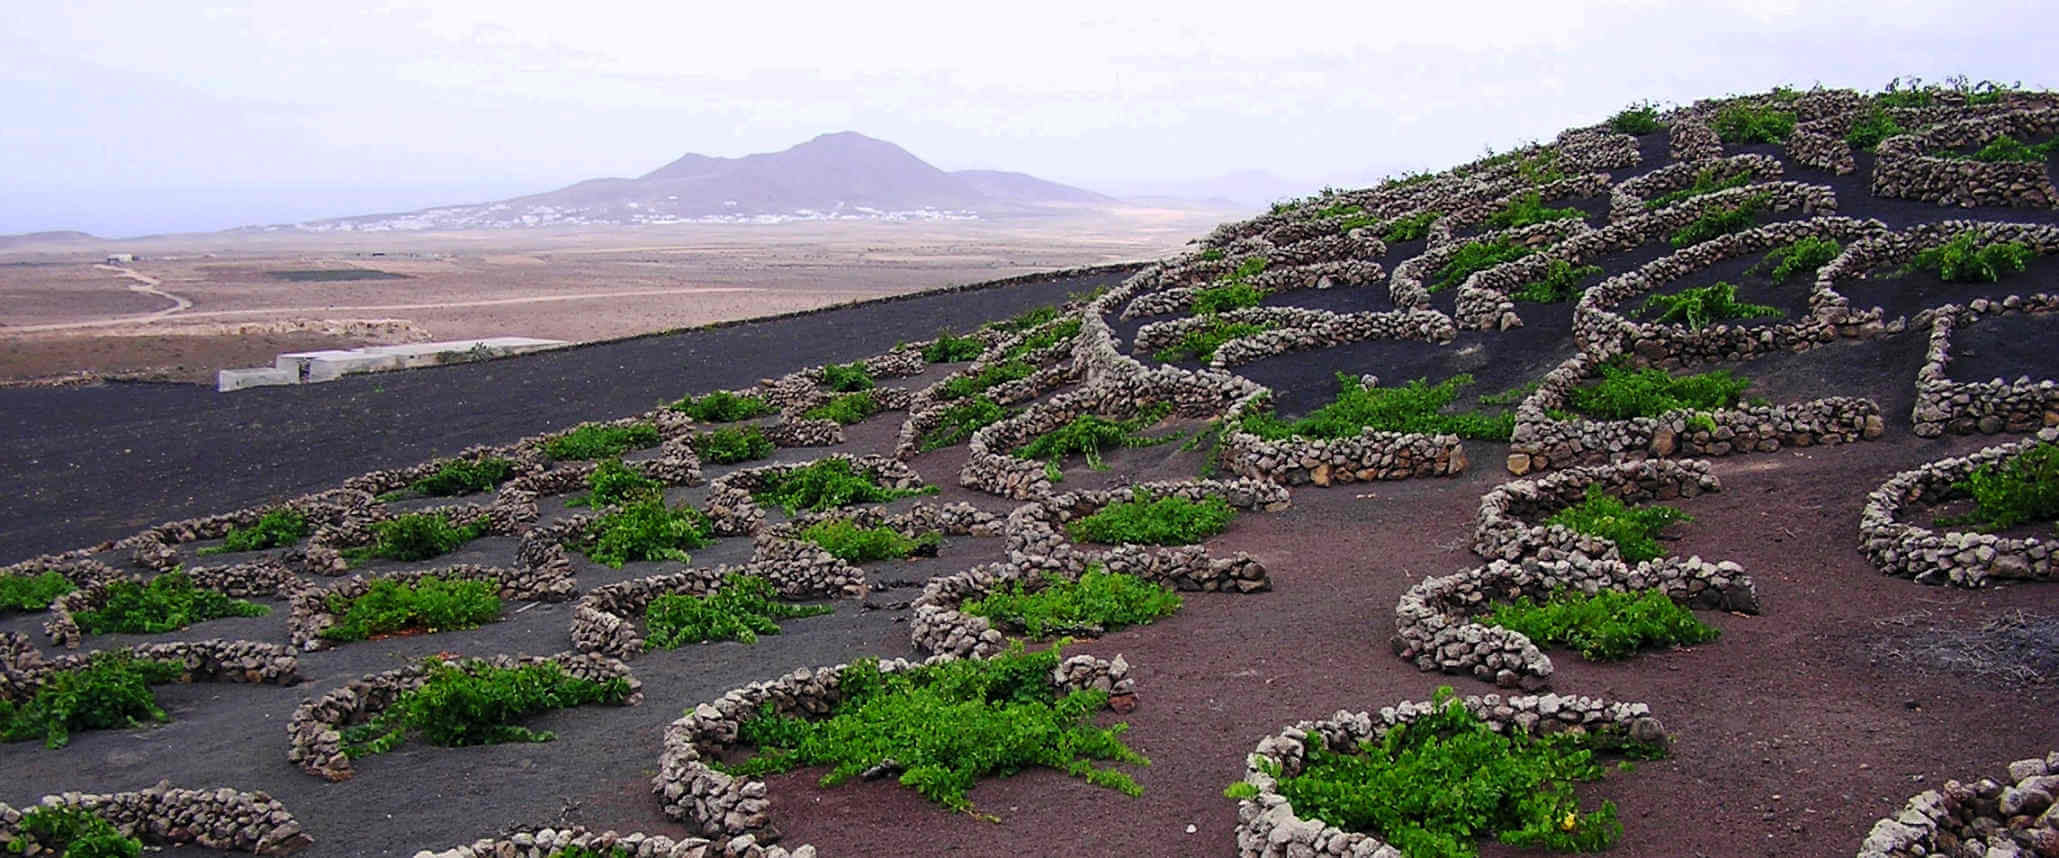 Excursion a La Geria en Lanzarote